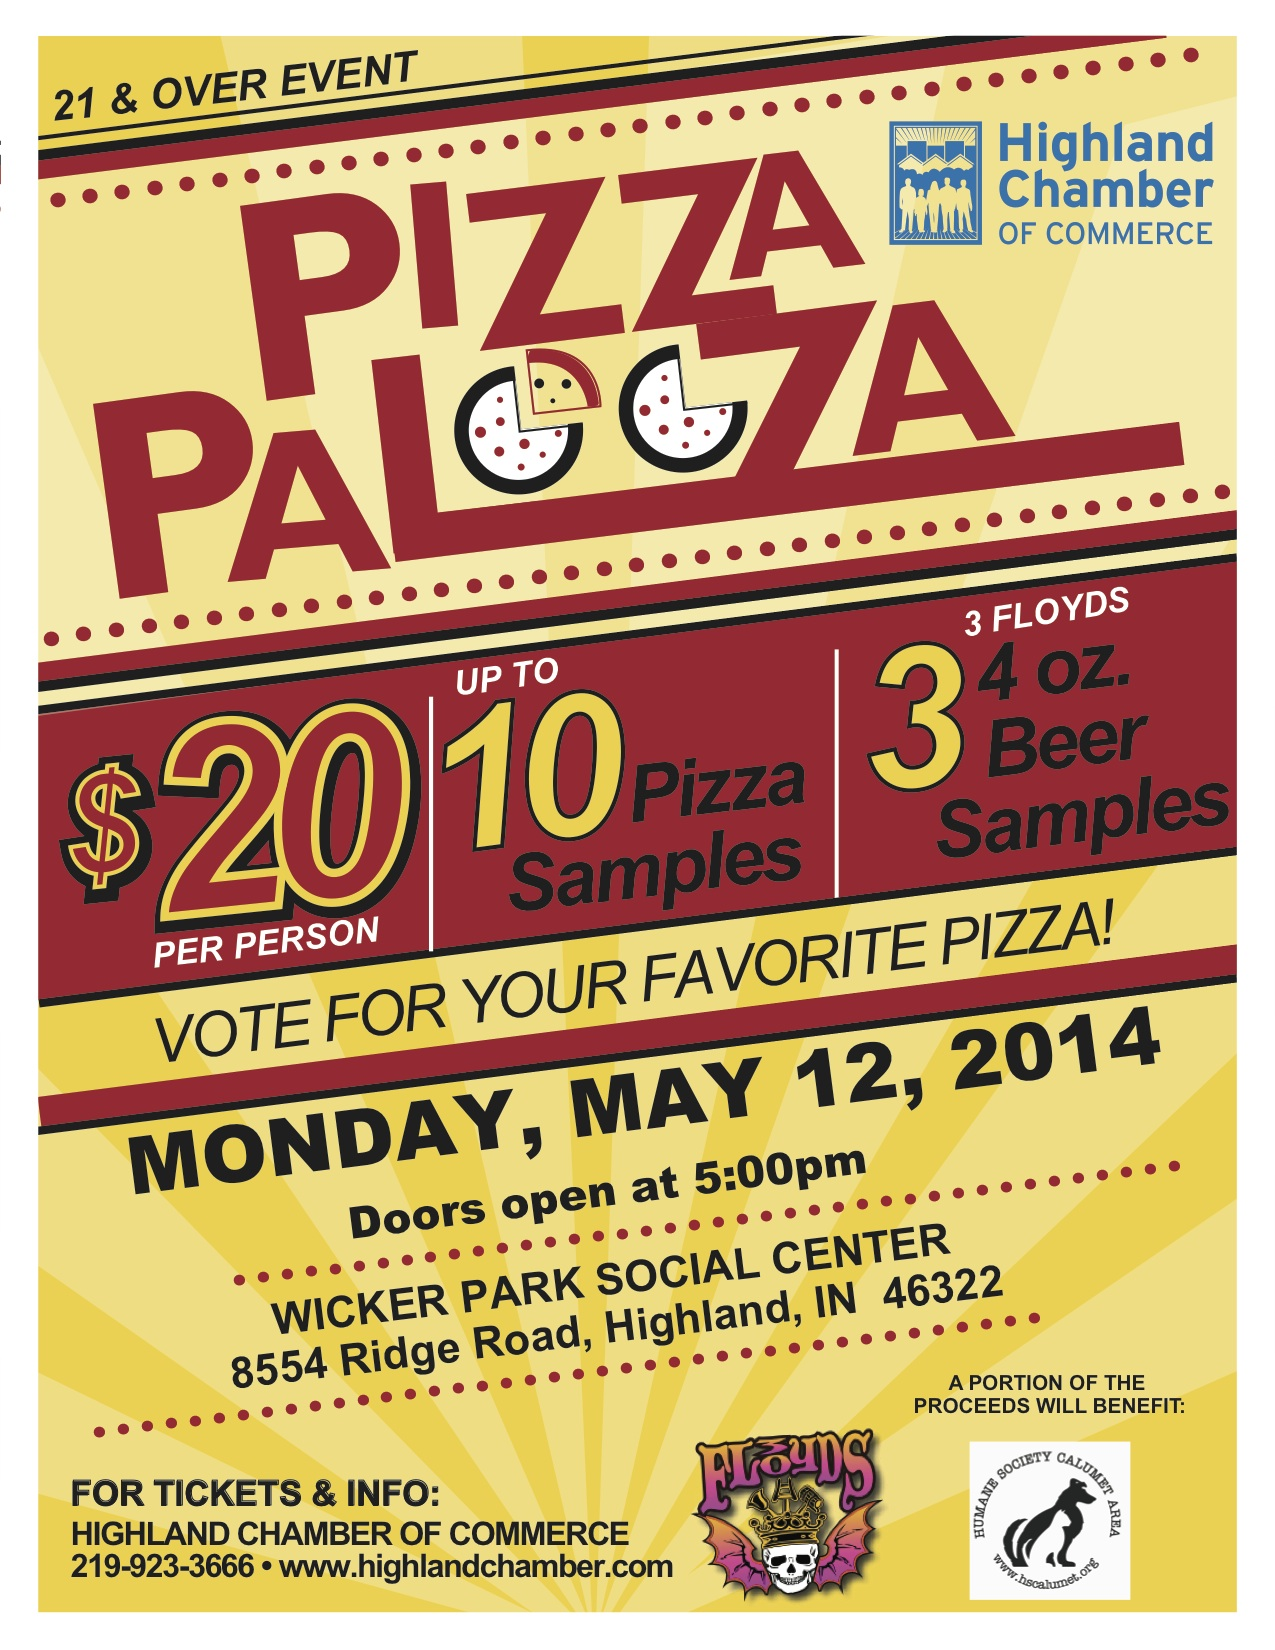 The Chamber's Pizza Palooza will be   Monday, May 12  ,      at Wicker Park.  Tickets are now on sale for $20 at the      Chamber office.             Attached is a Pizza Palooza flyer to promote the event      or take to your favorite pizzeria to invite them to      participate.   There are a few spots still open.             We have Capri, Langel's Gelsosomo's, Squigi's and      Sanfratello's reserved.             Looking forward to another fun and delicious event,             Mary Luptak, Executive Director      Highland Chamber of Commerce